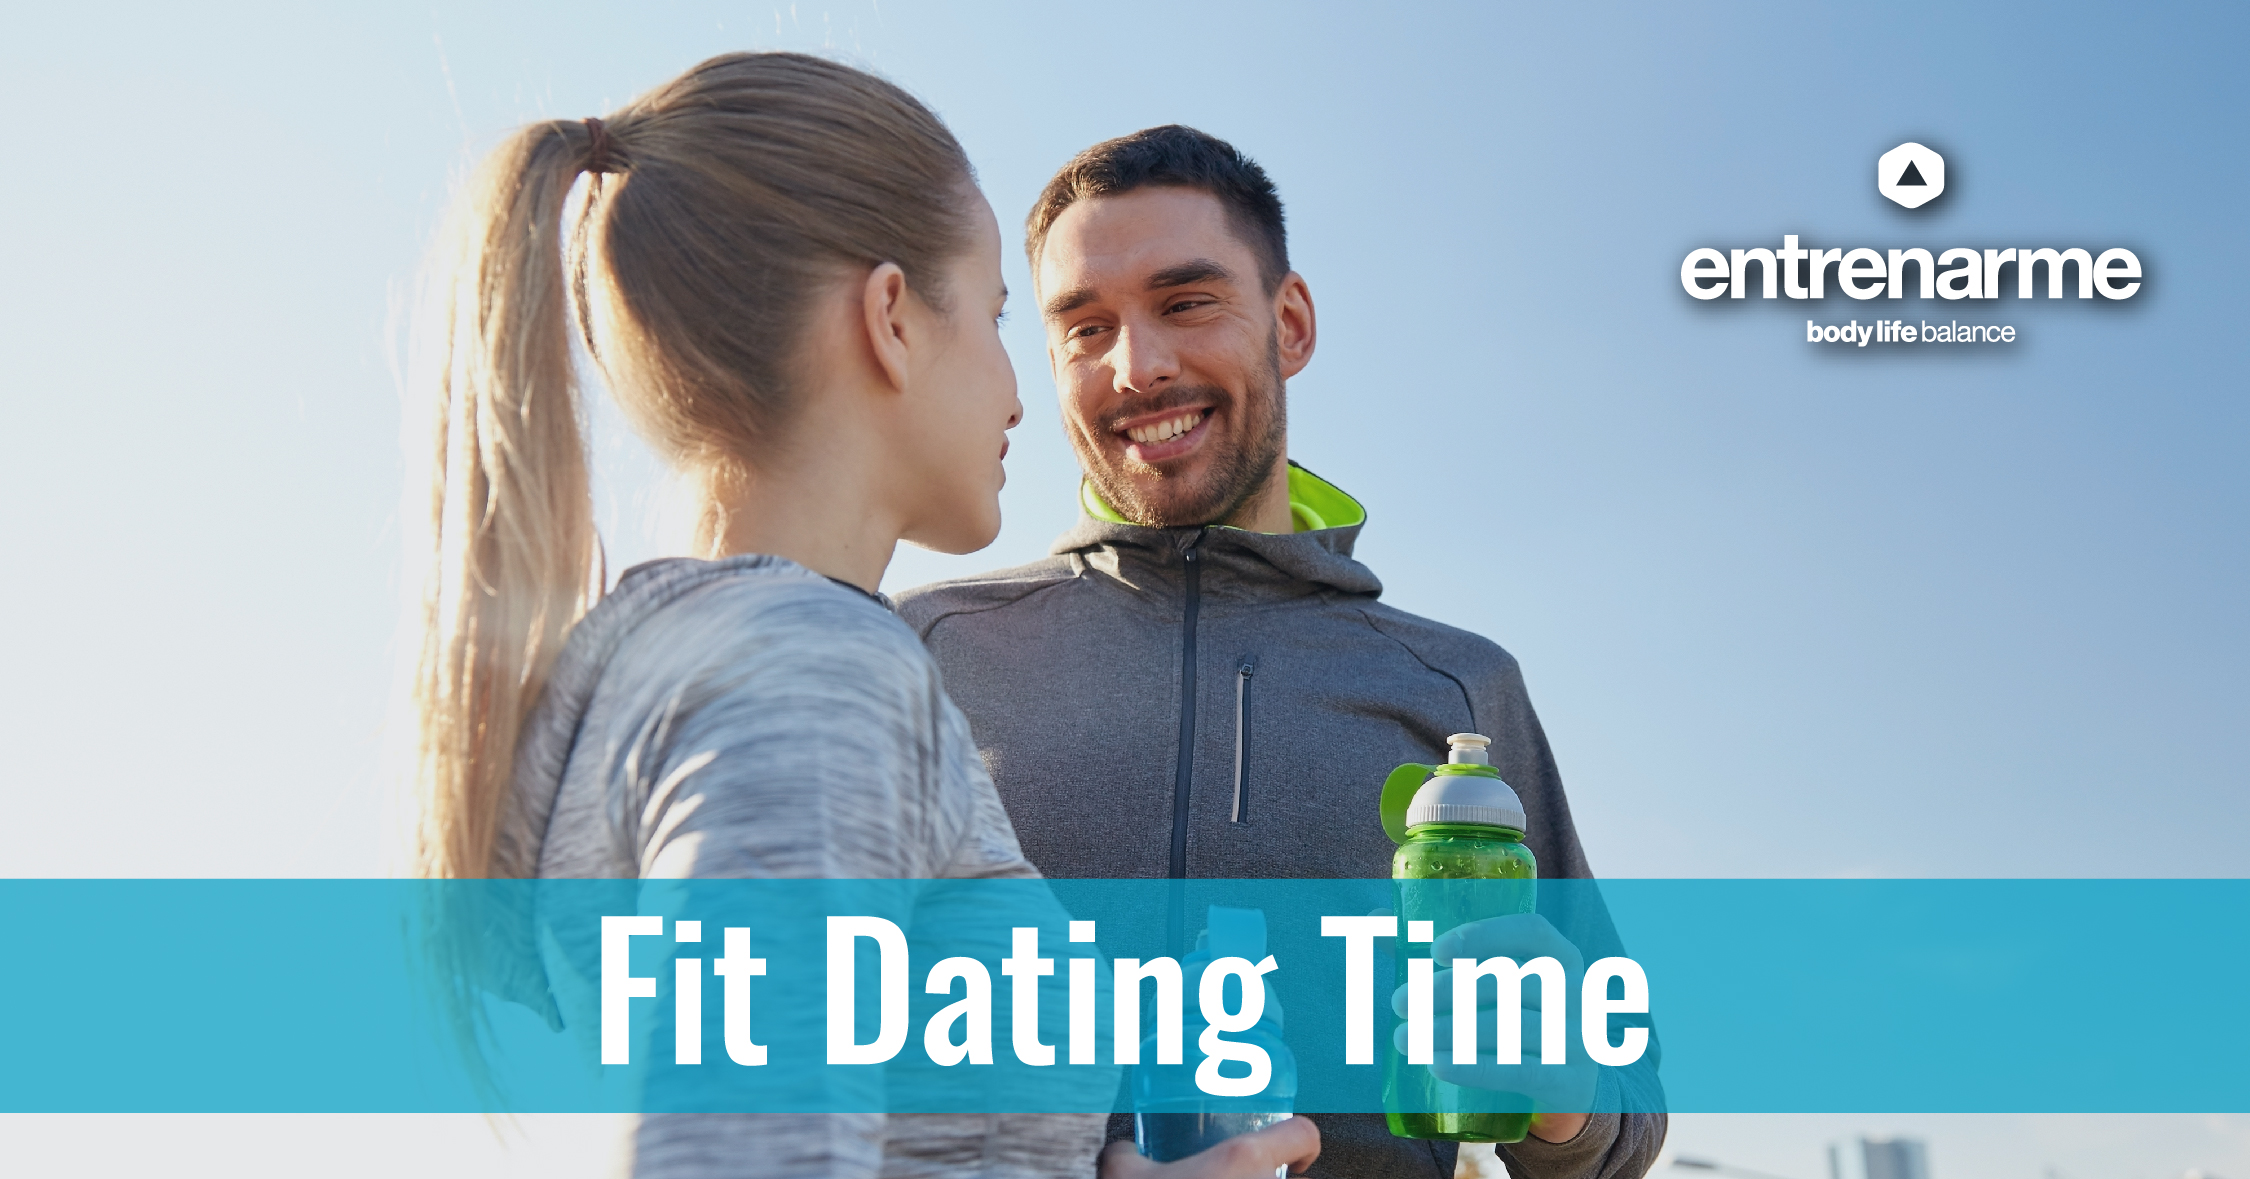 Fit dating